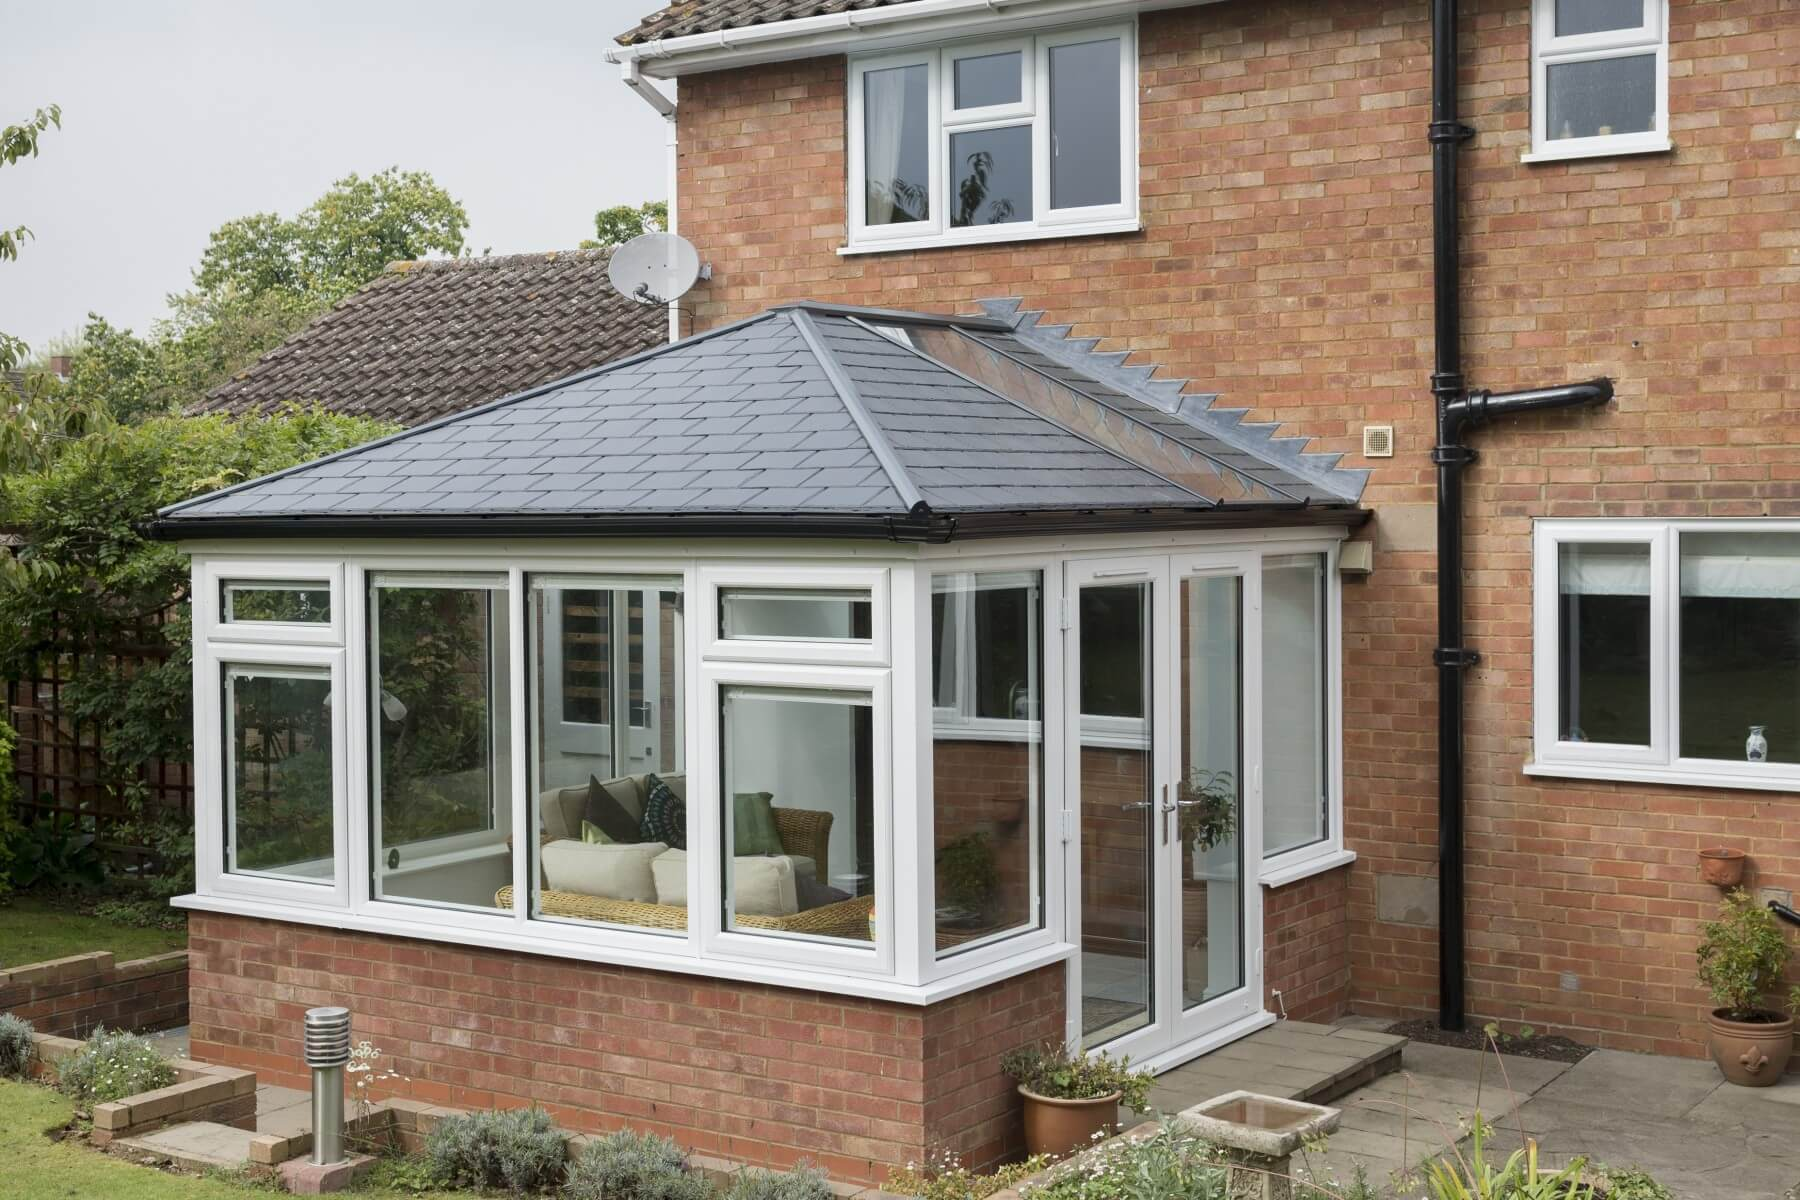 Ultrafame solid roof conservatory